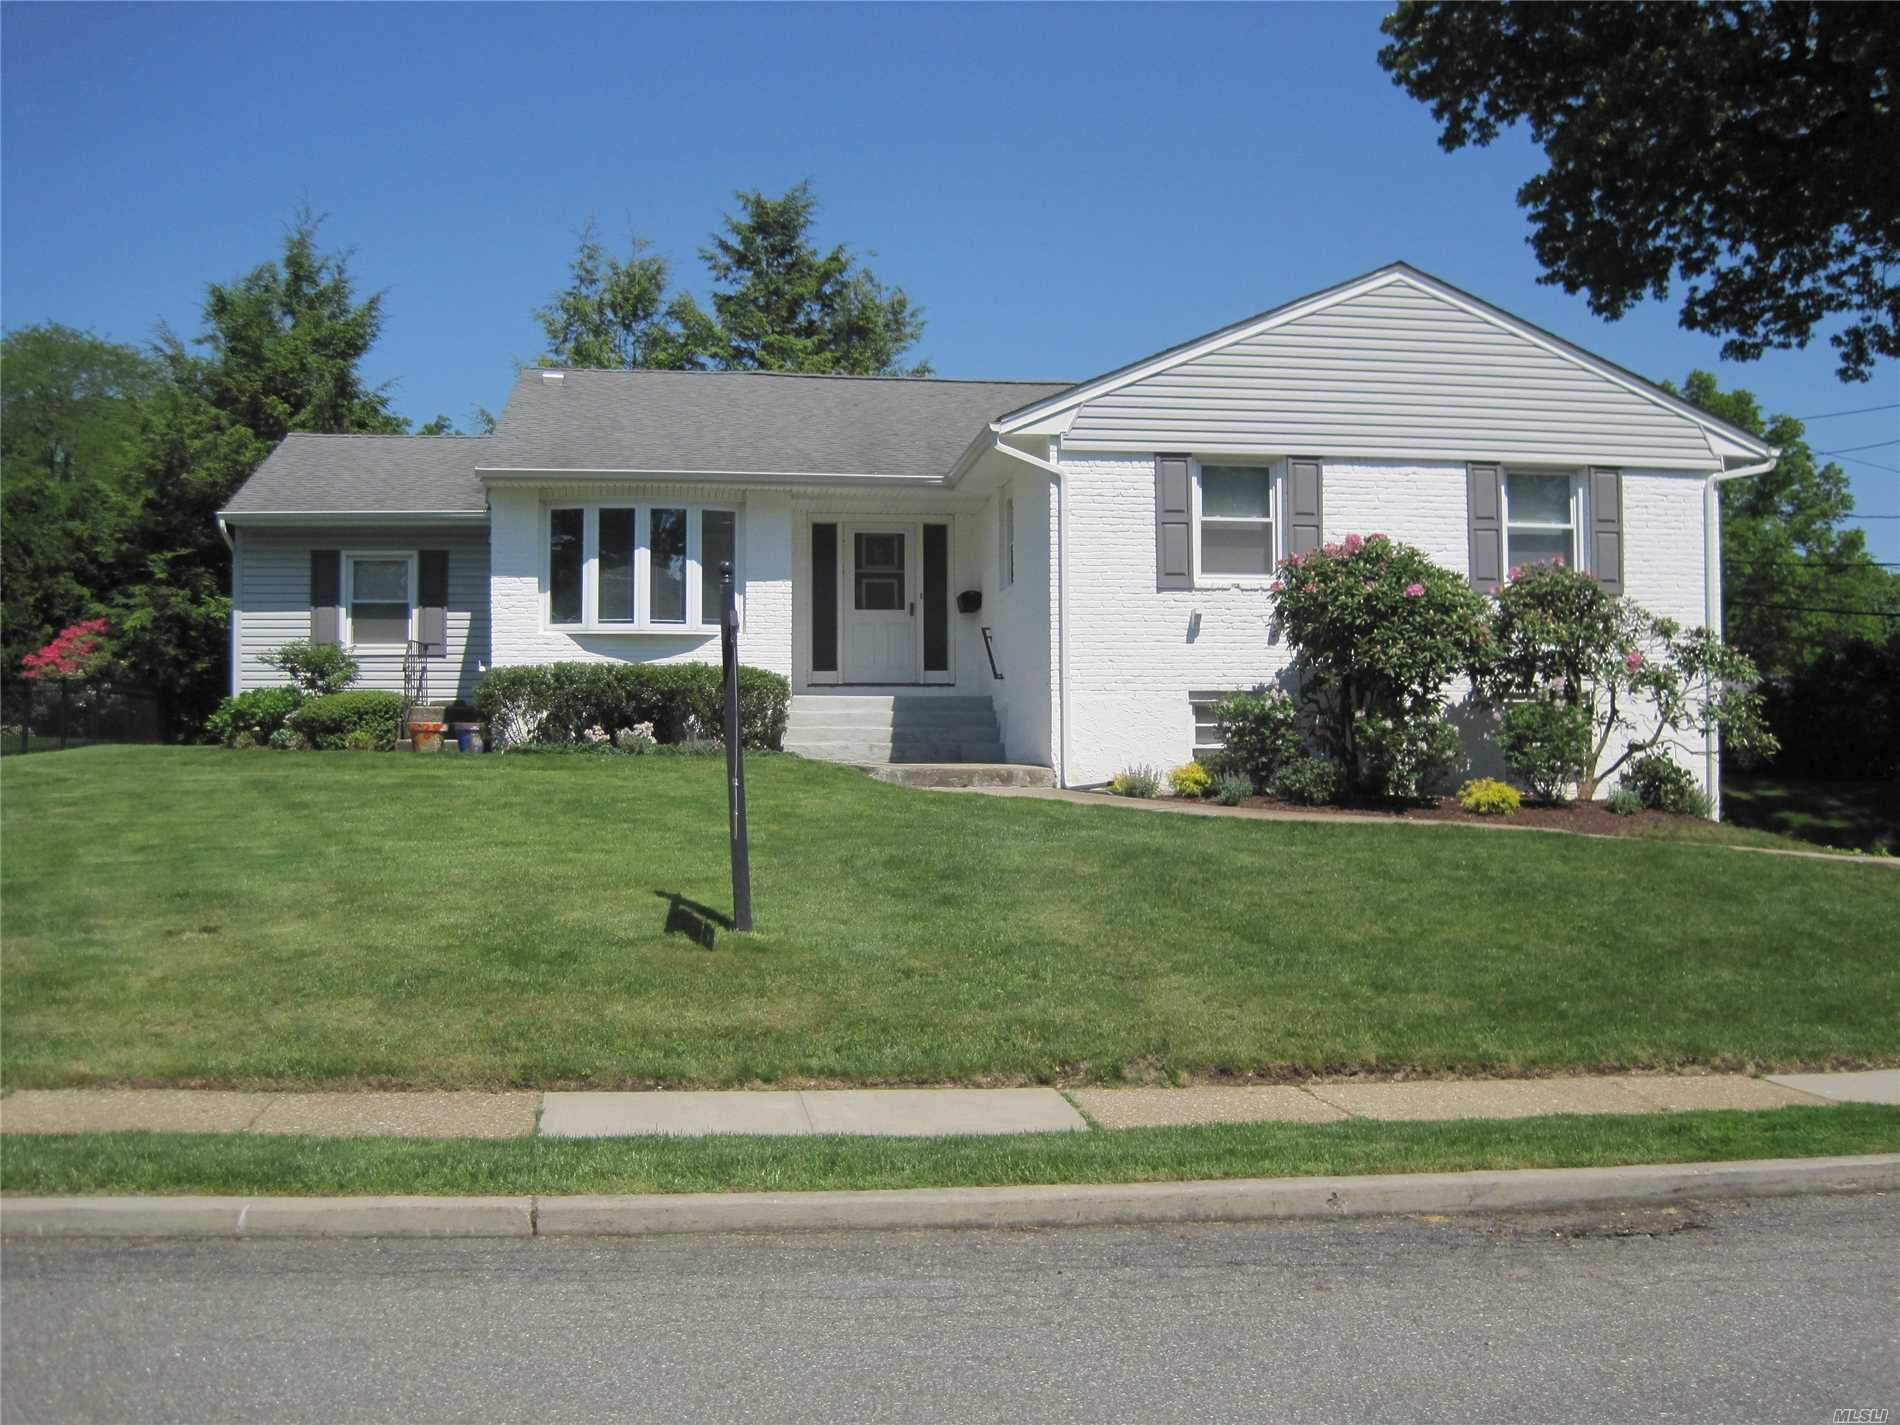 51 Roosevelt Dr - East Norwich, New York